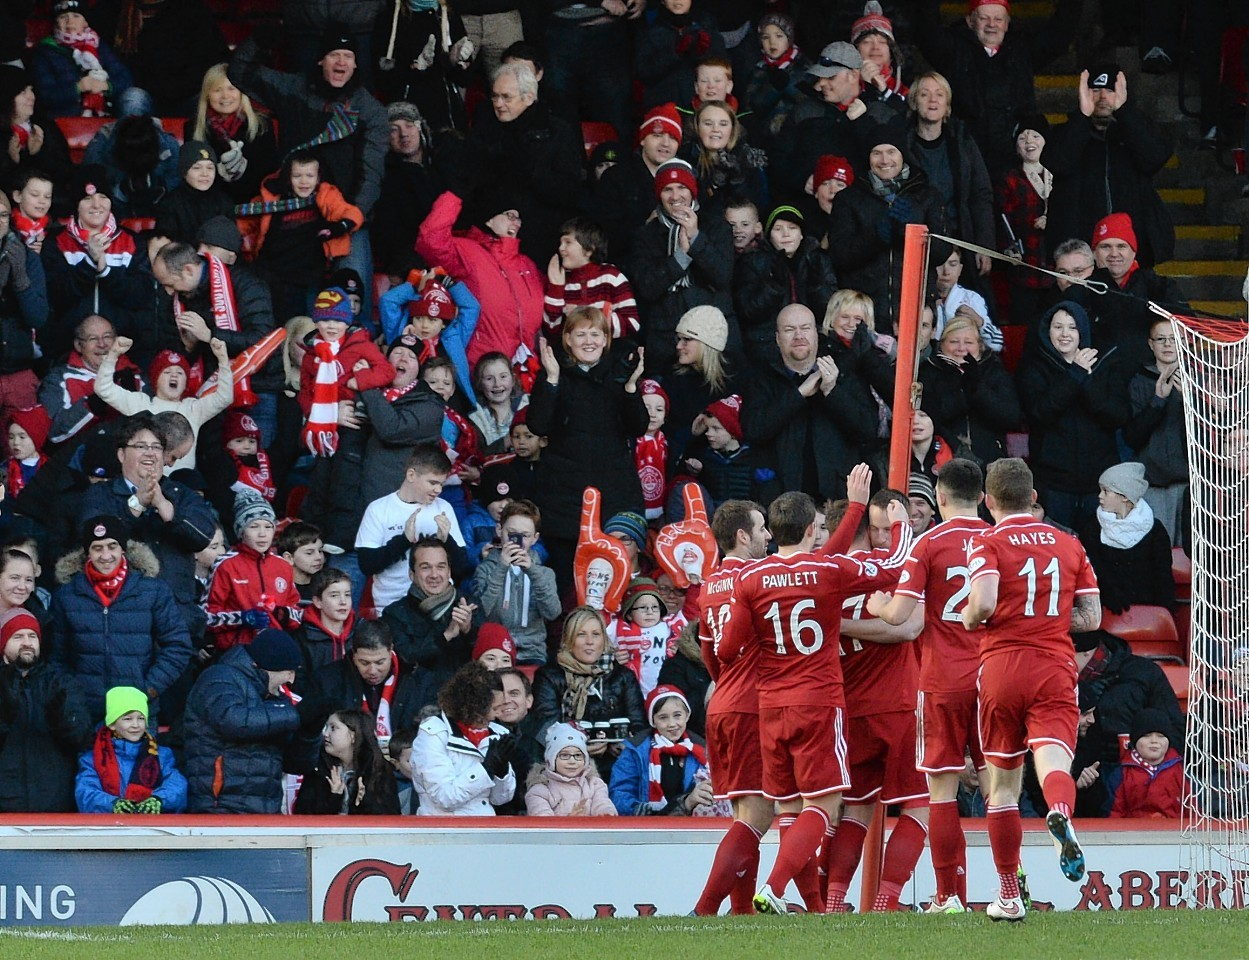 The Dons players and supporters celebrate David Goodwillie's goal